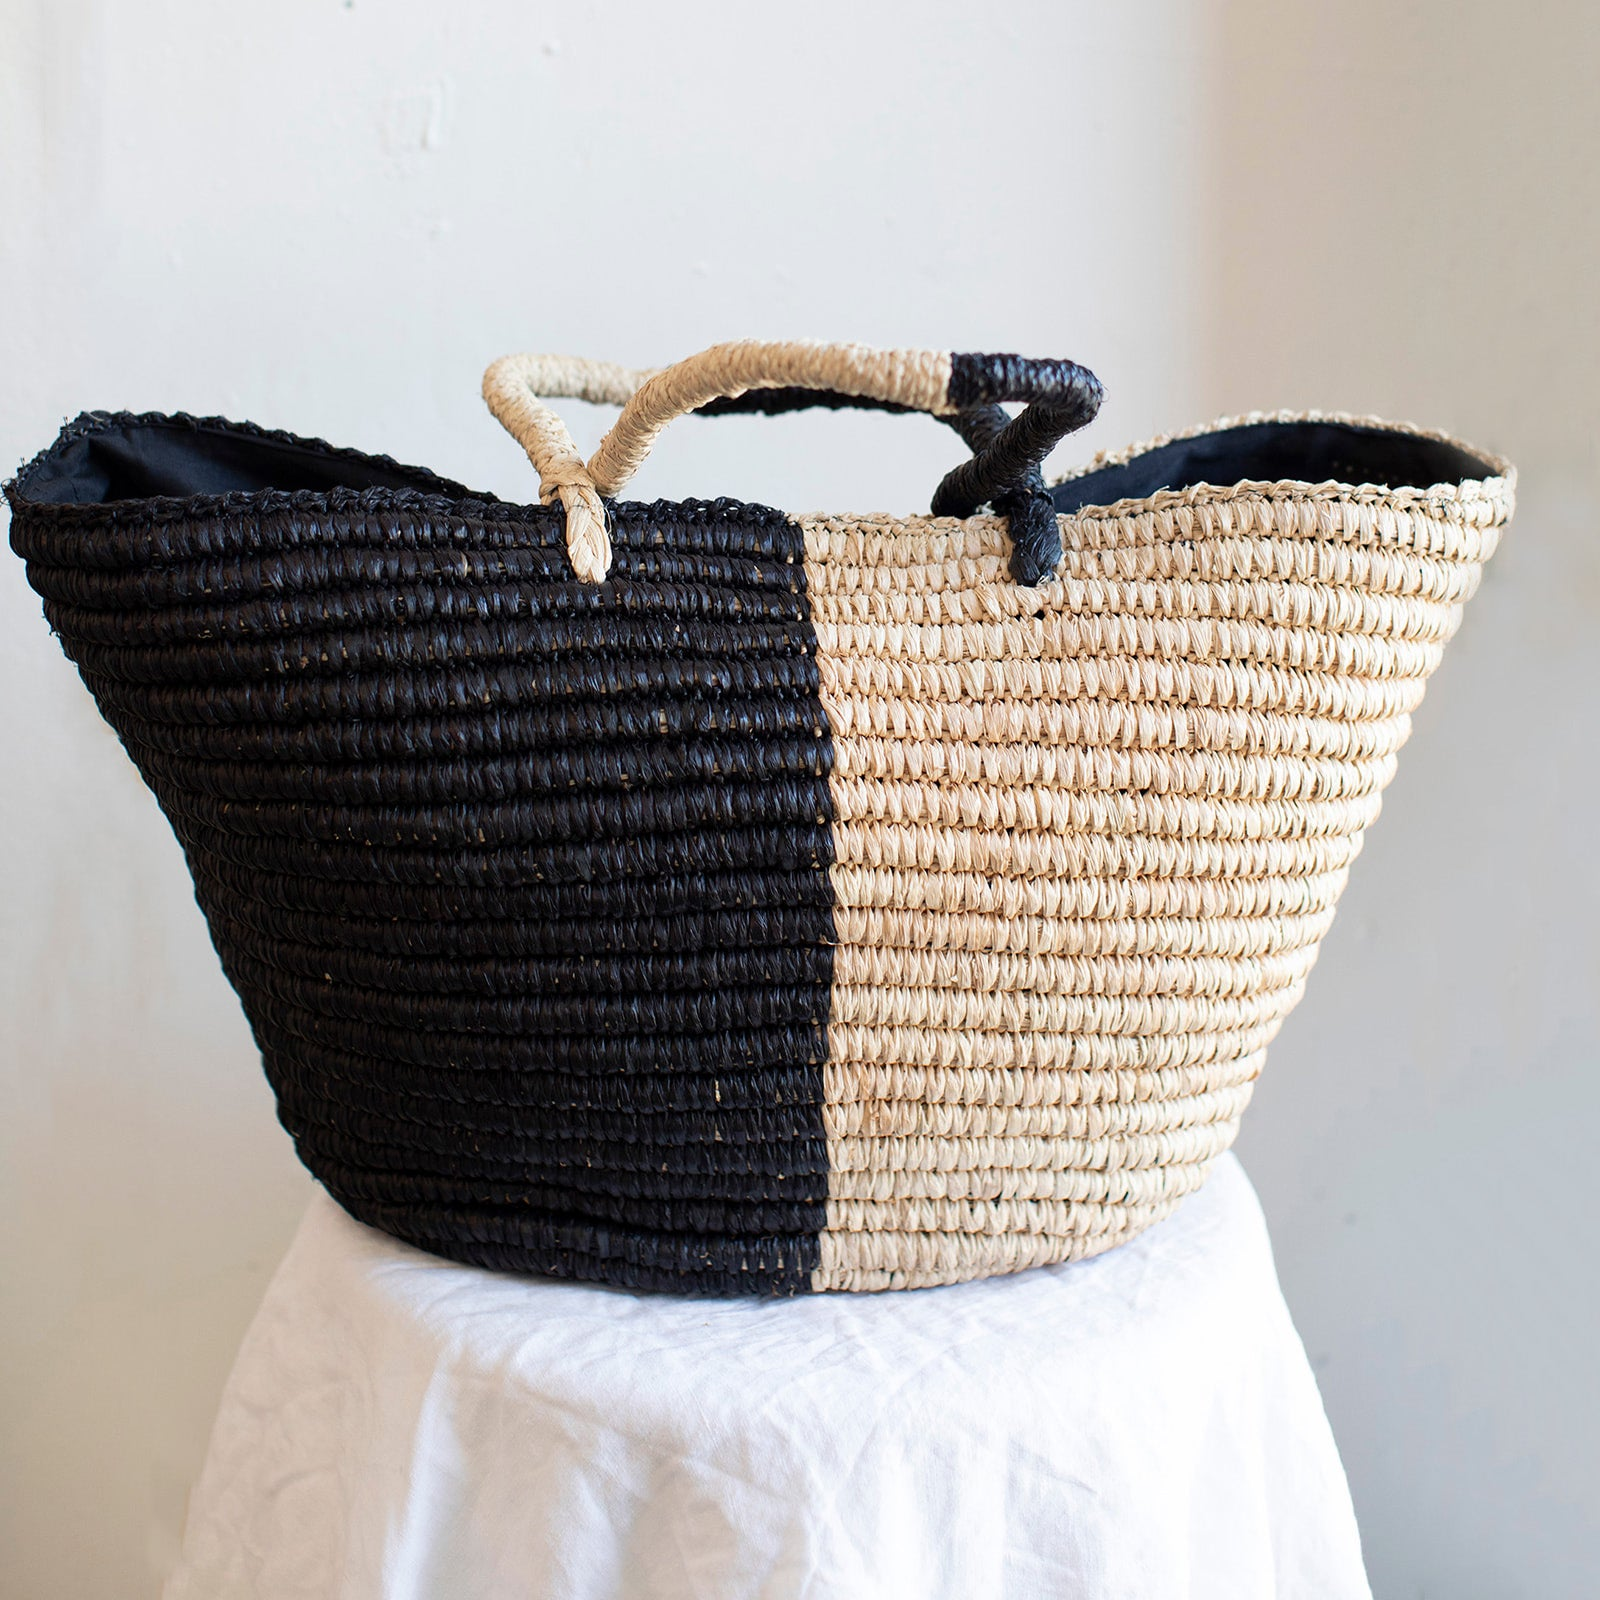 Large black and cream straw tote bag ethically made by Shebobo in Madagascar